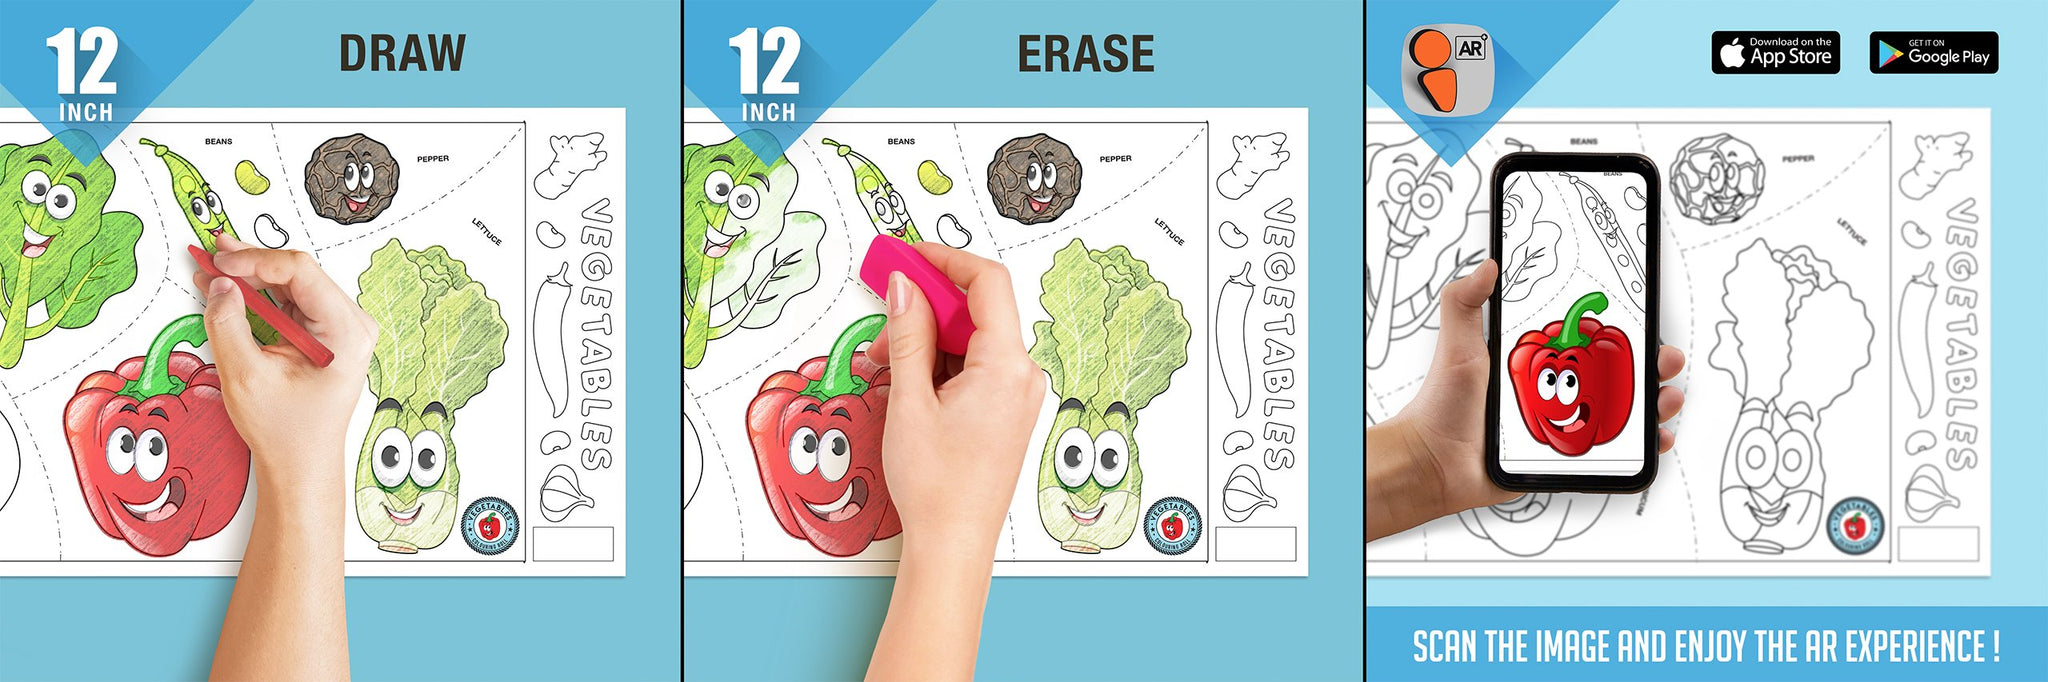 Vegetables Colouring Roll (12 inch) - Inkmeo